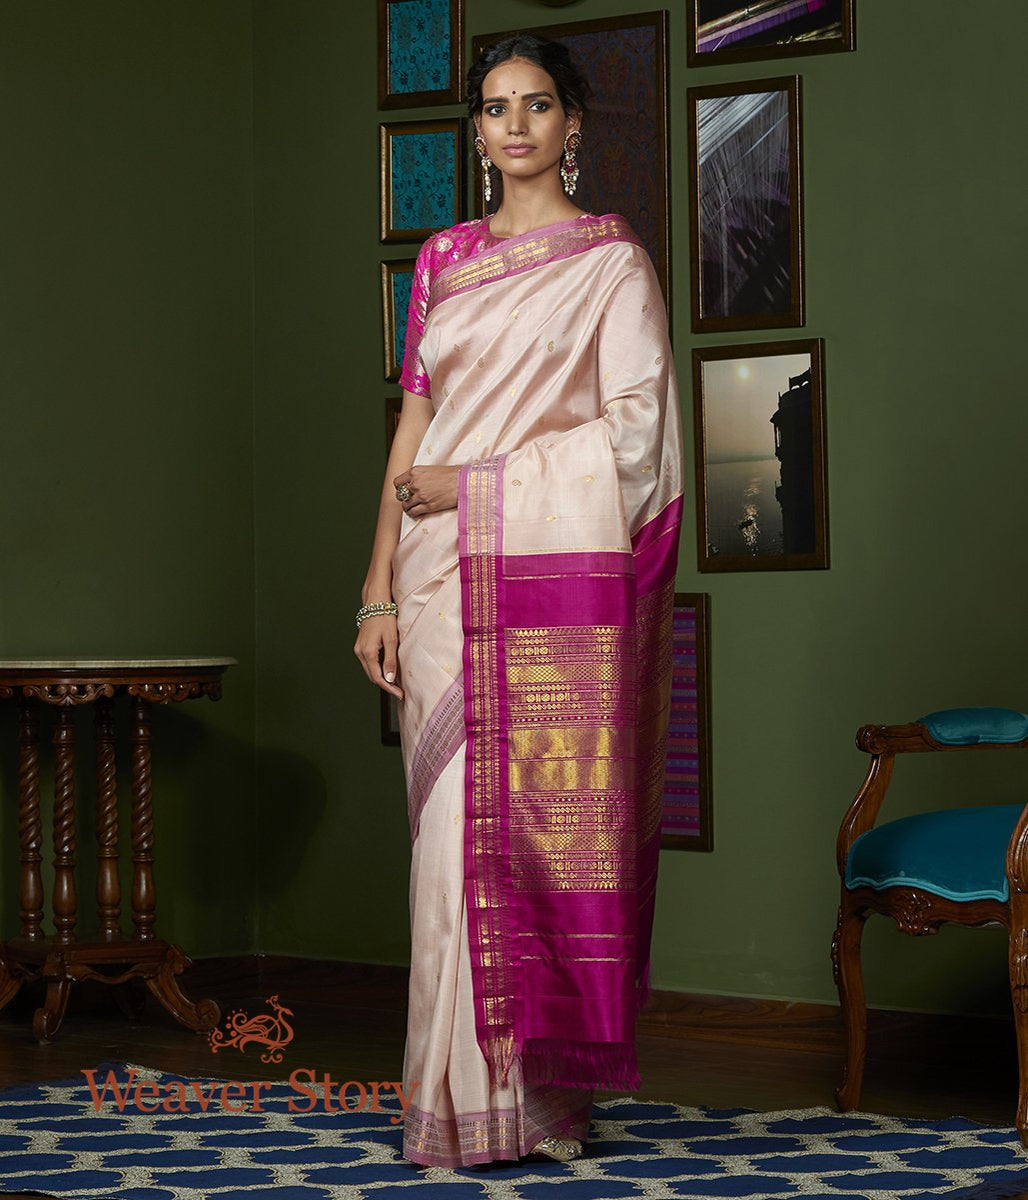 Handwoven Blush Pink Kanjivaram Silk Saree with Mauve Border